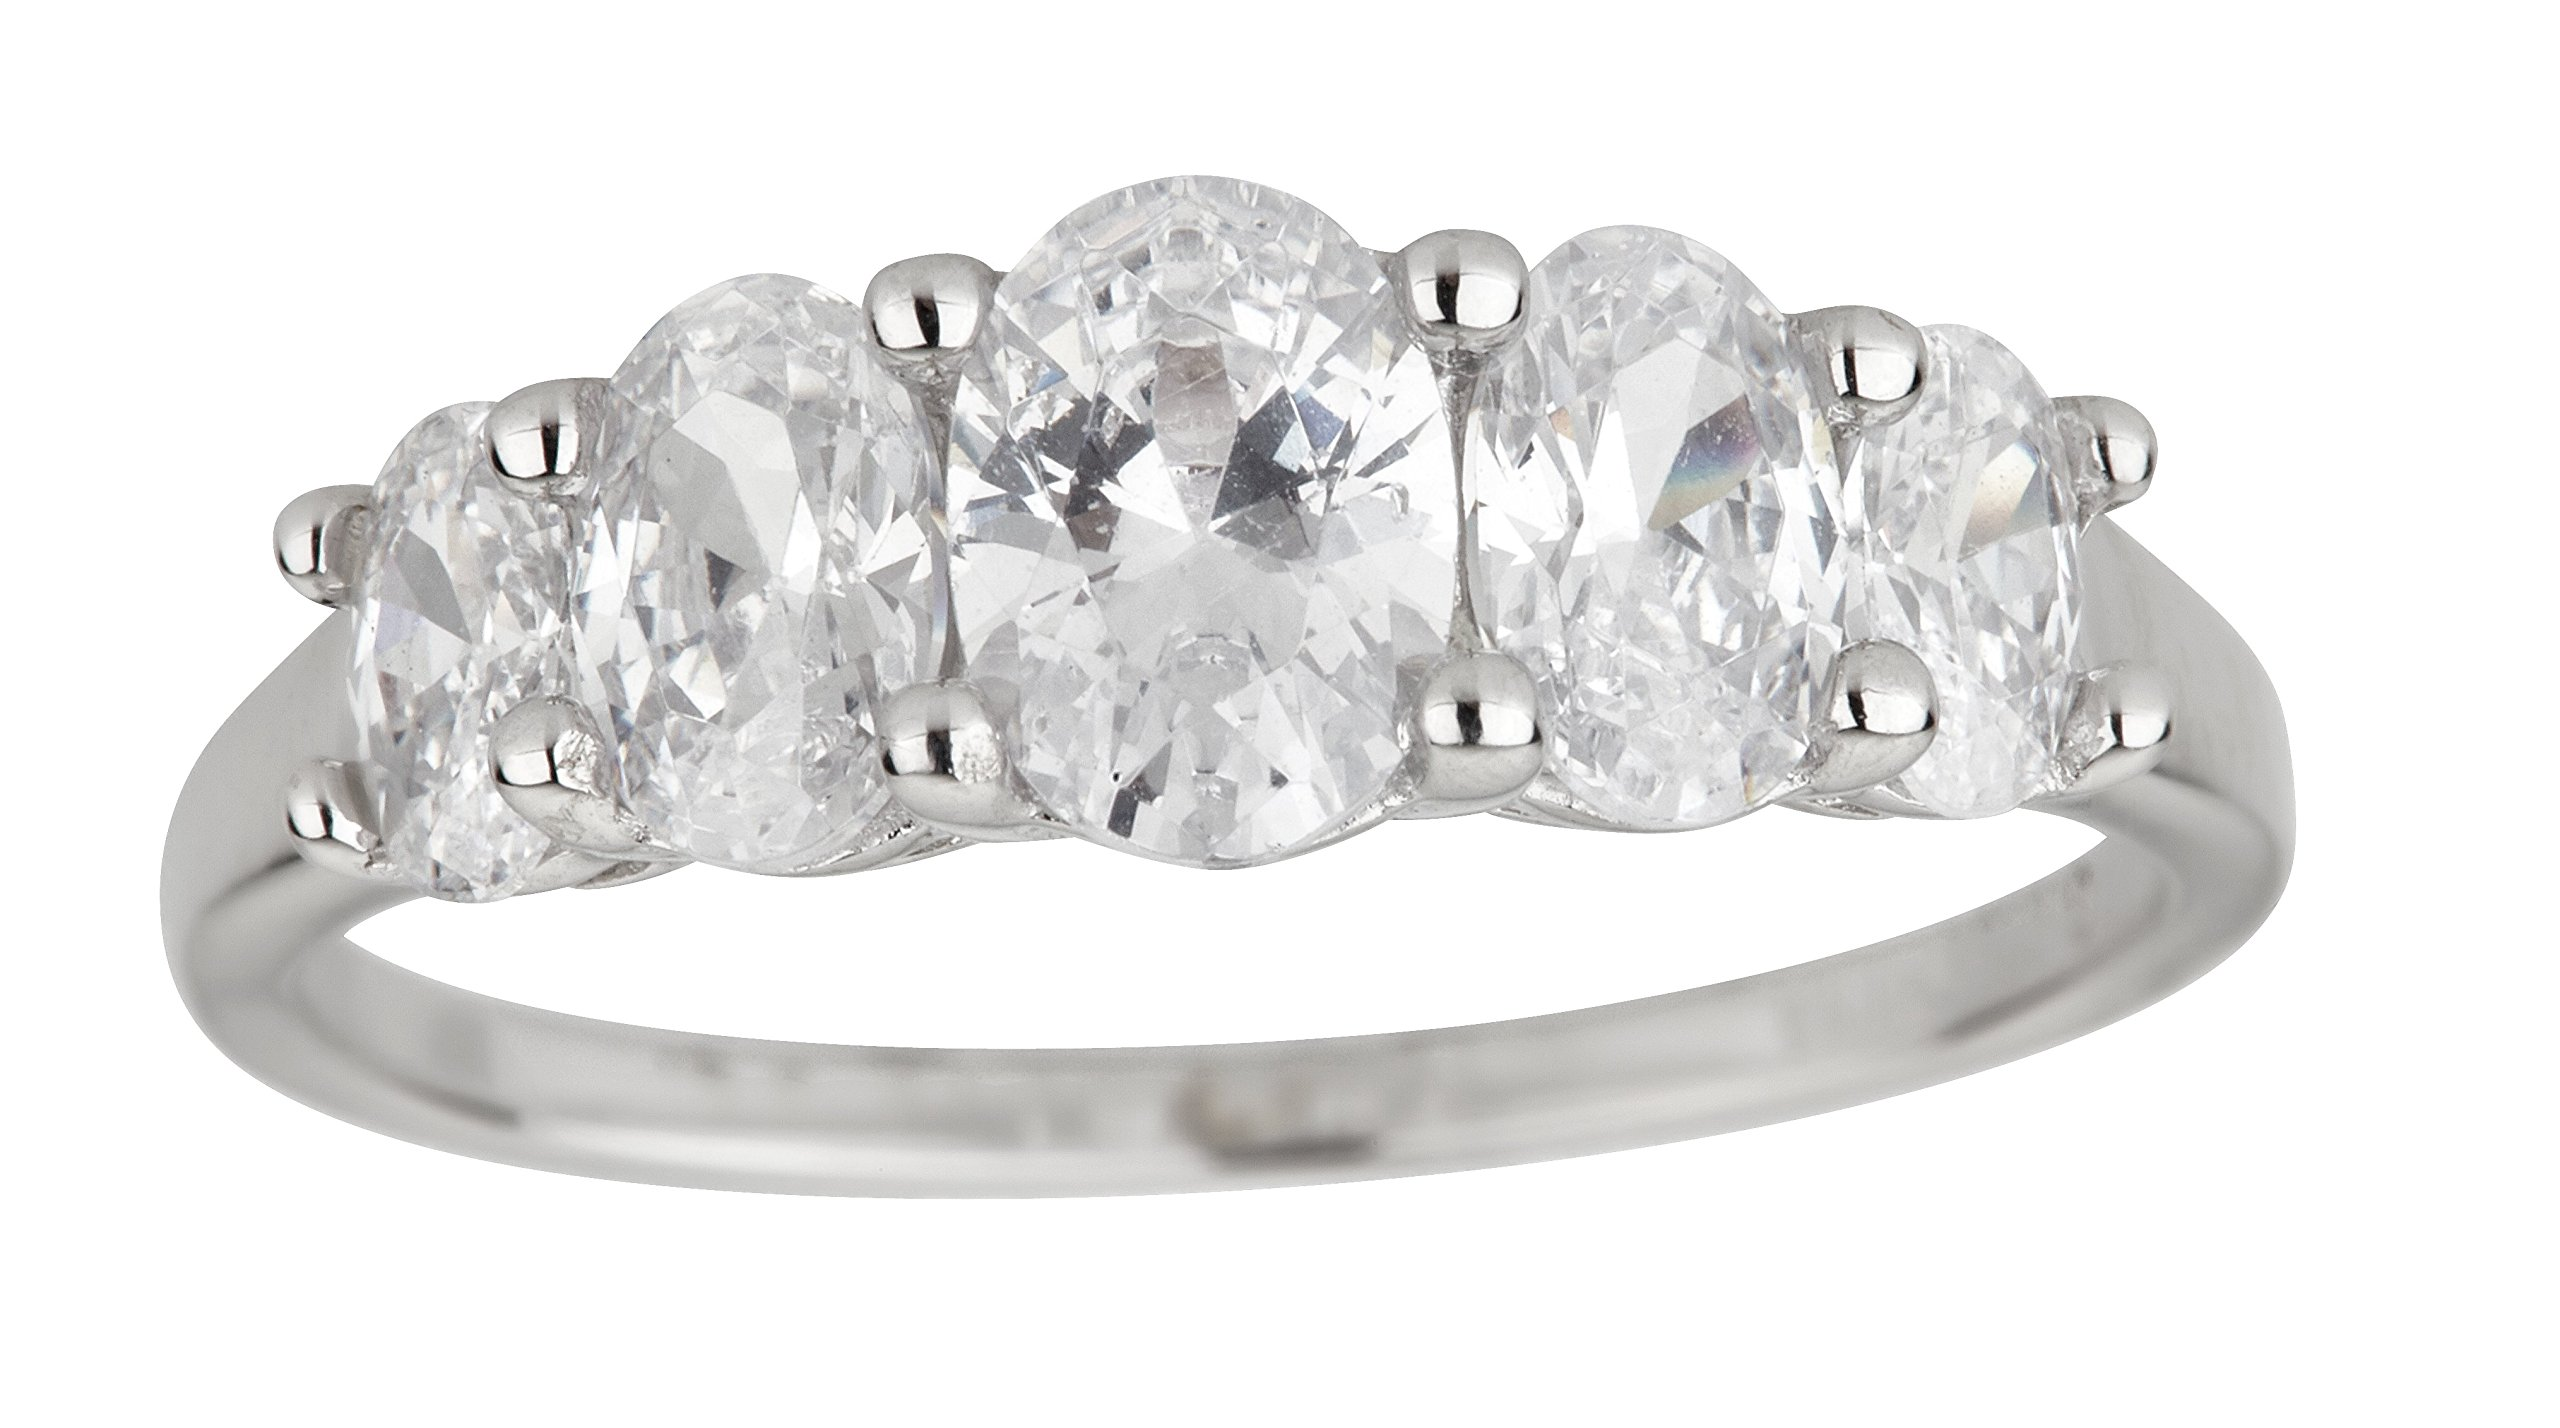 Sterling Silver Rhodium Oval 5 Stone Cubic Zirconia Graduated Anniversary Band Engagement Ring